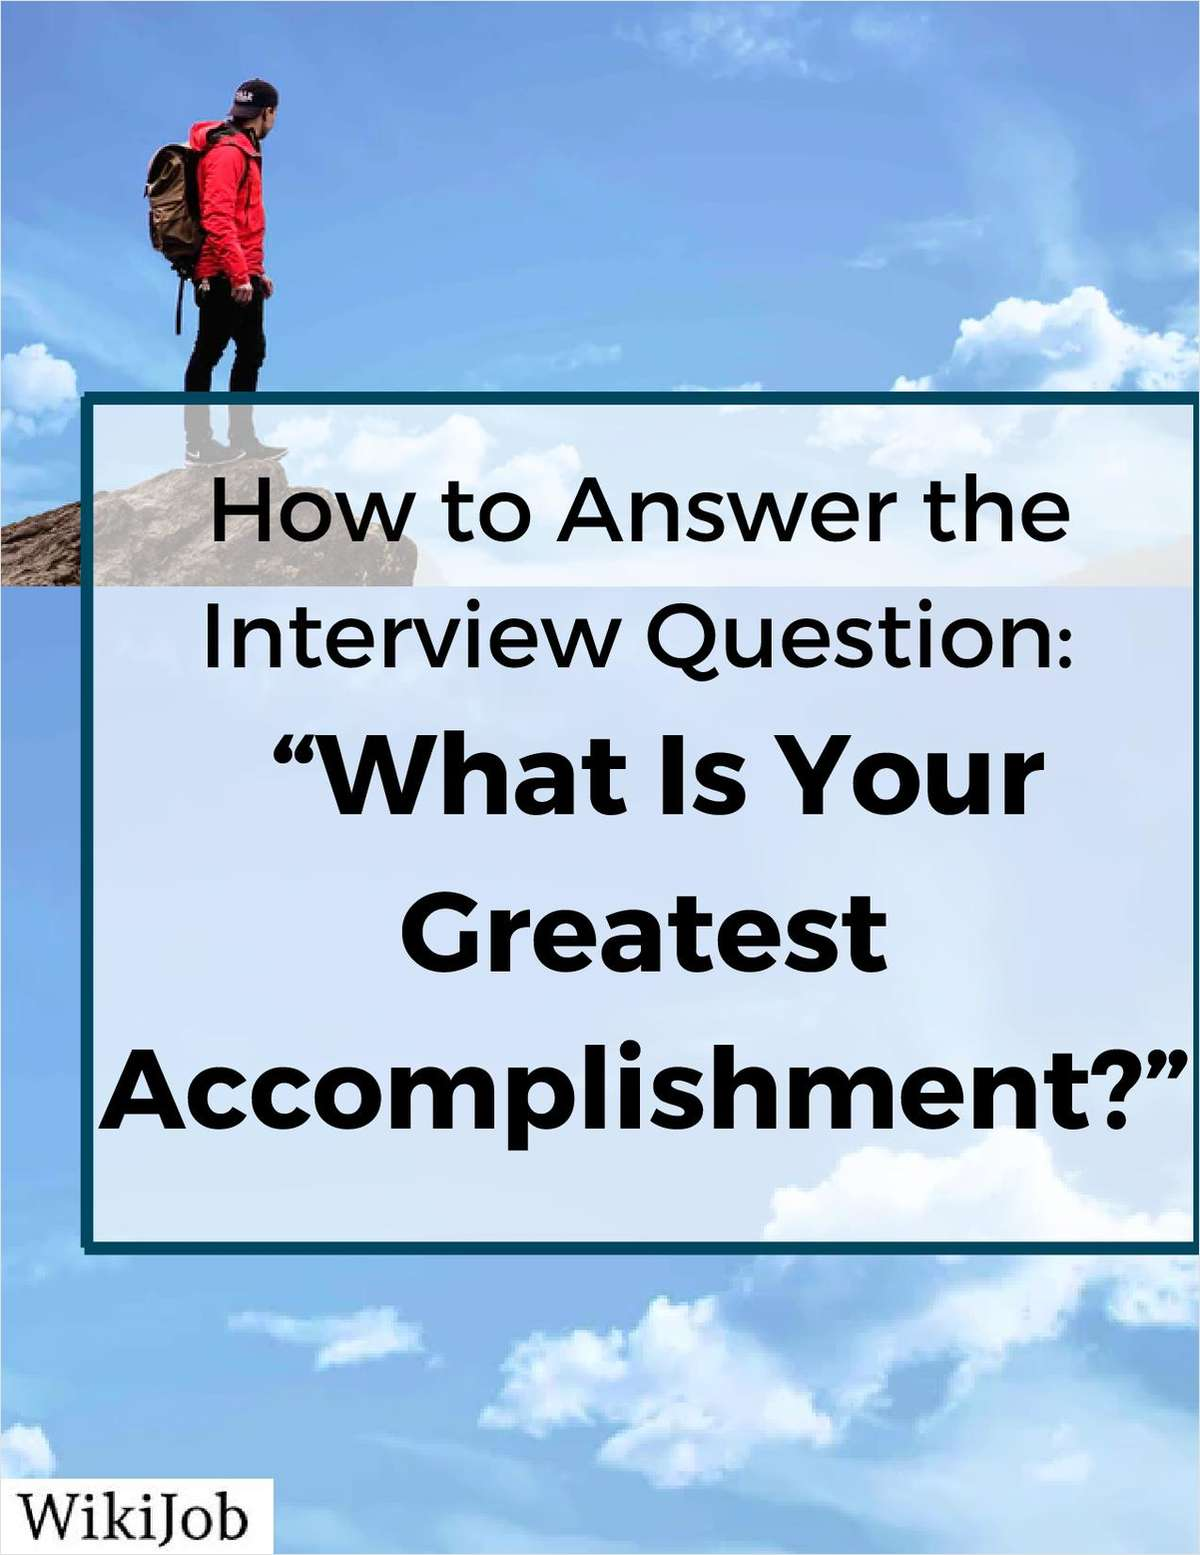 How to Answer the Question What is your Greatest Accomplishment?